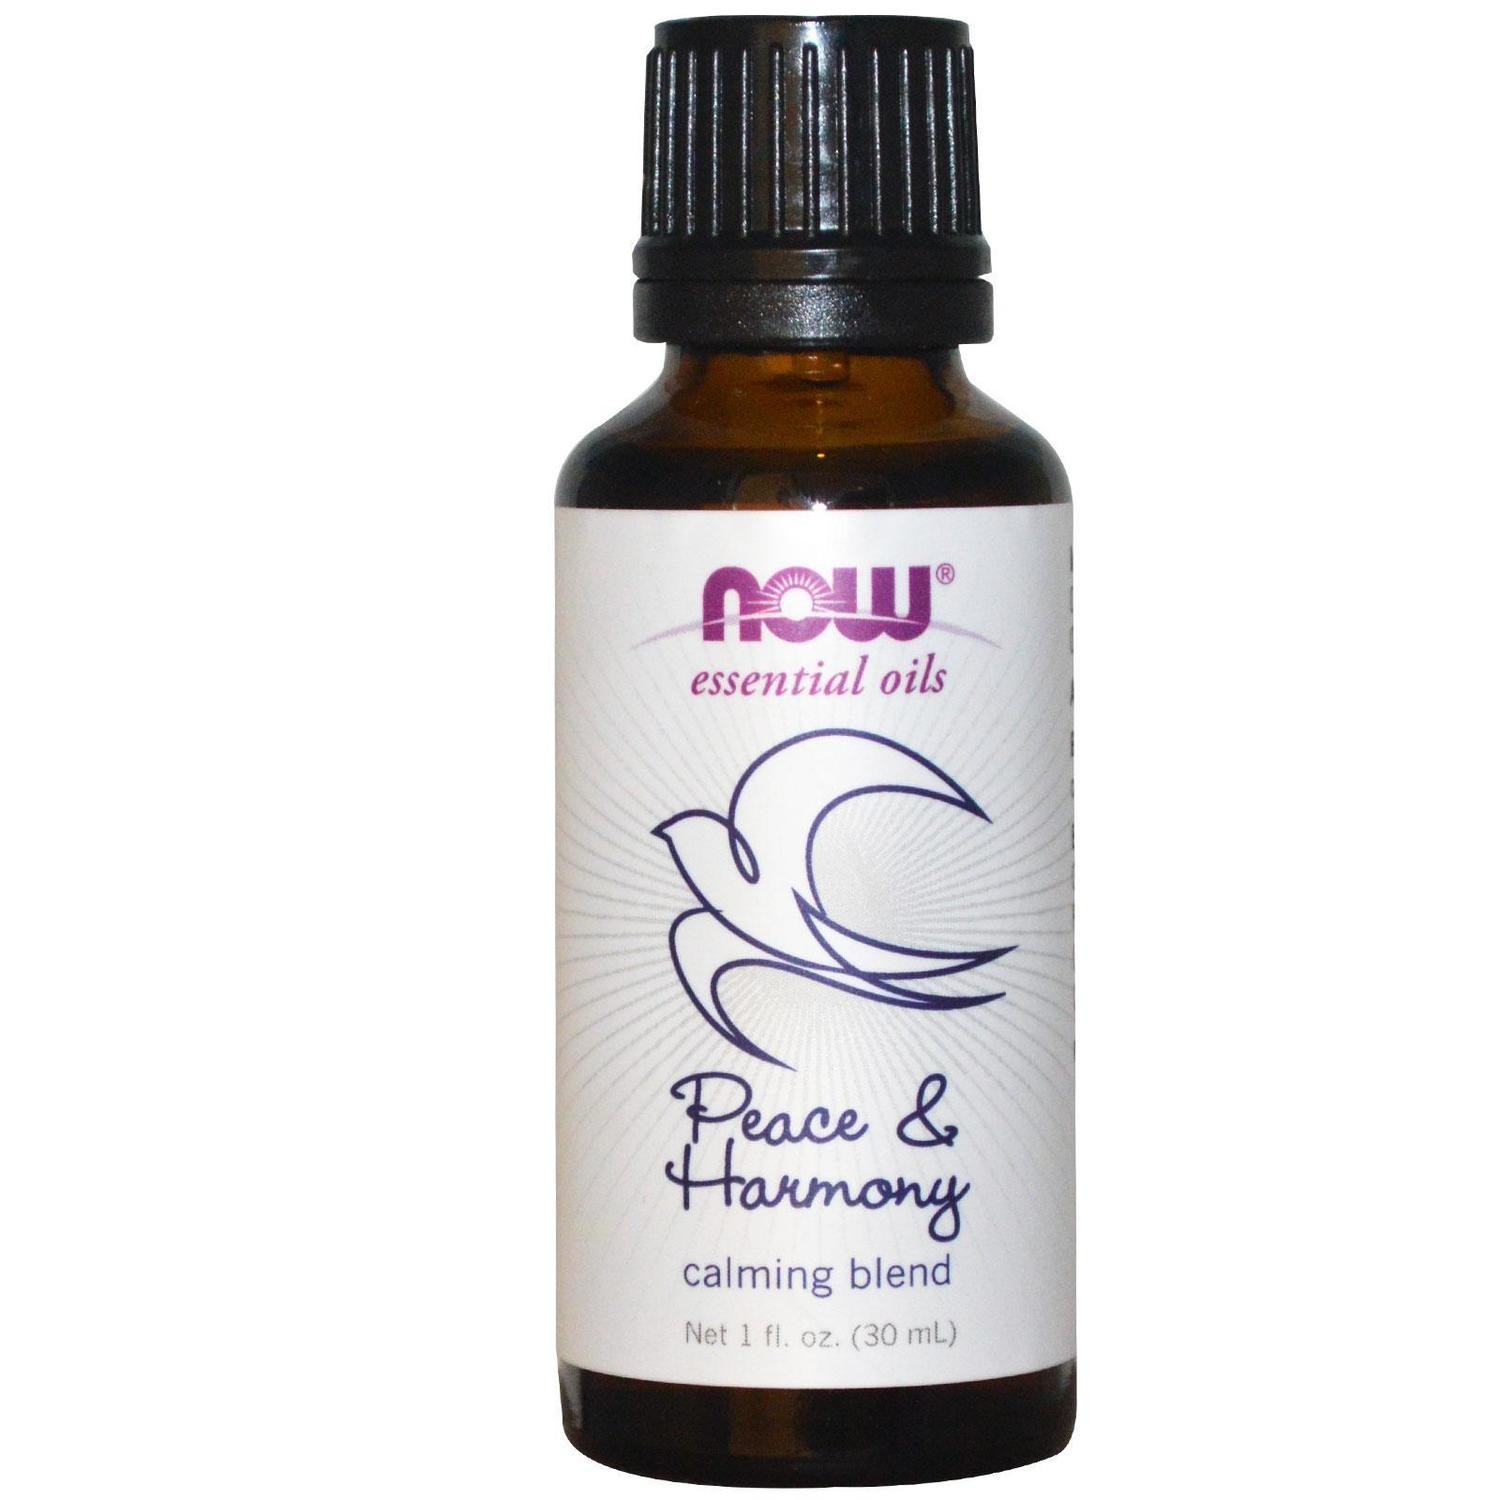 Peace & Harmony Oil Blend - 1 fl. oz.